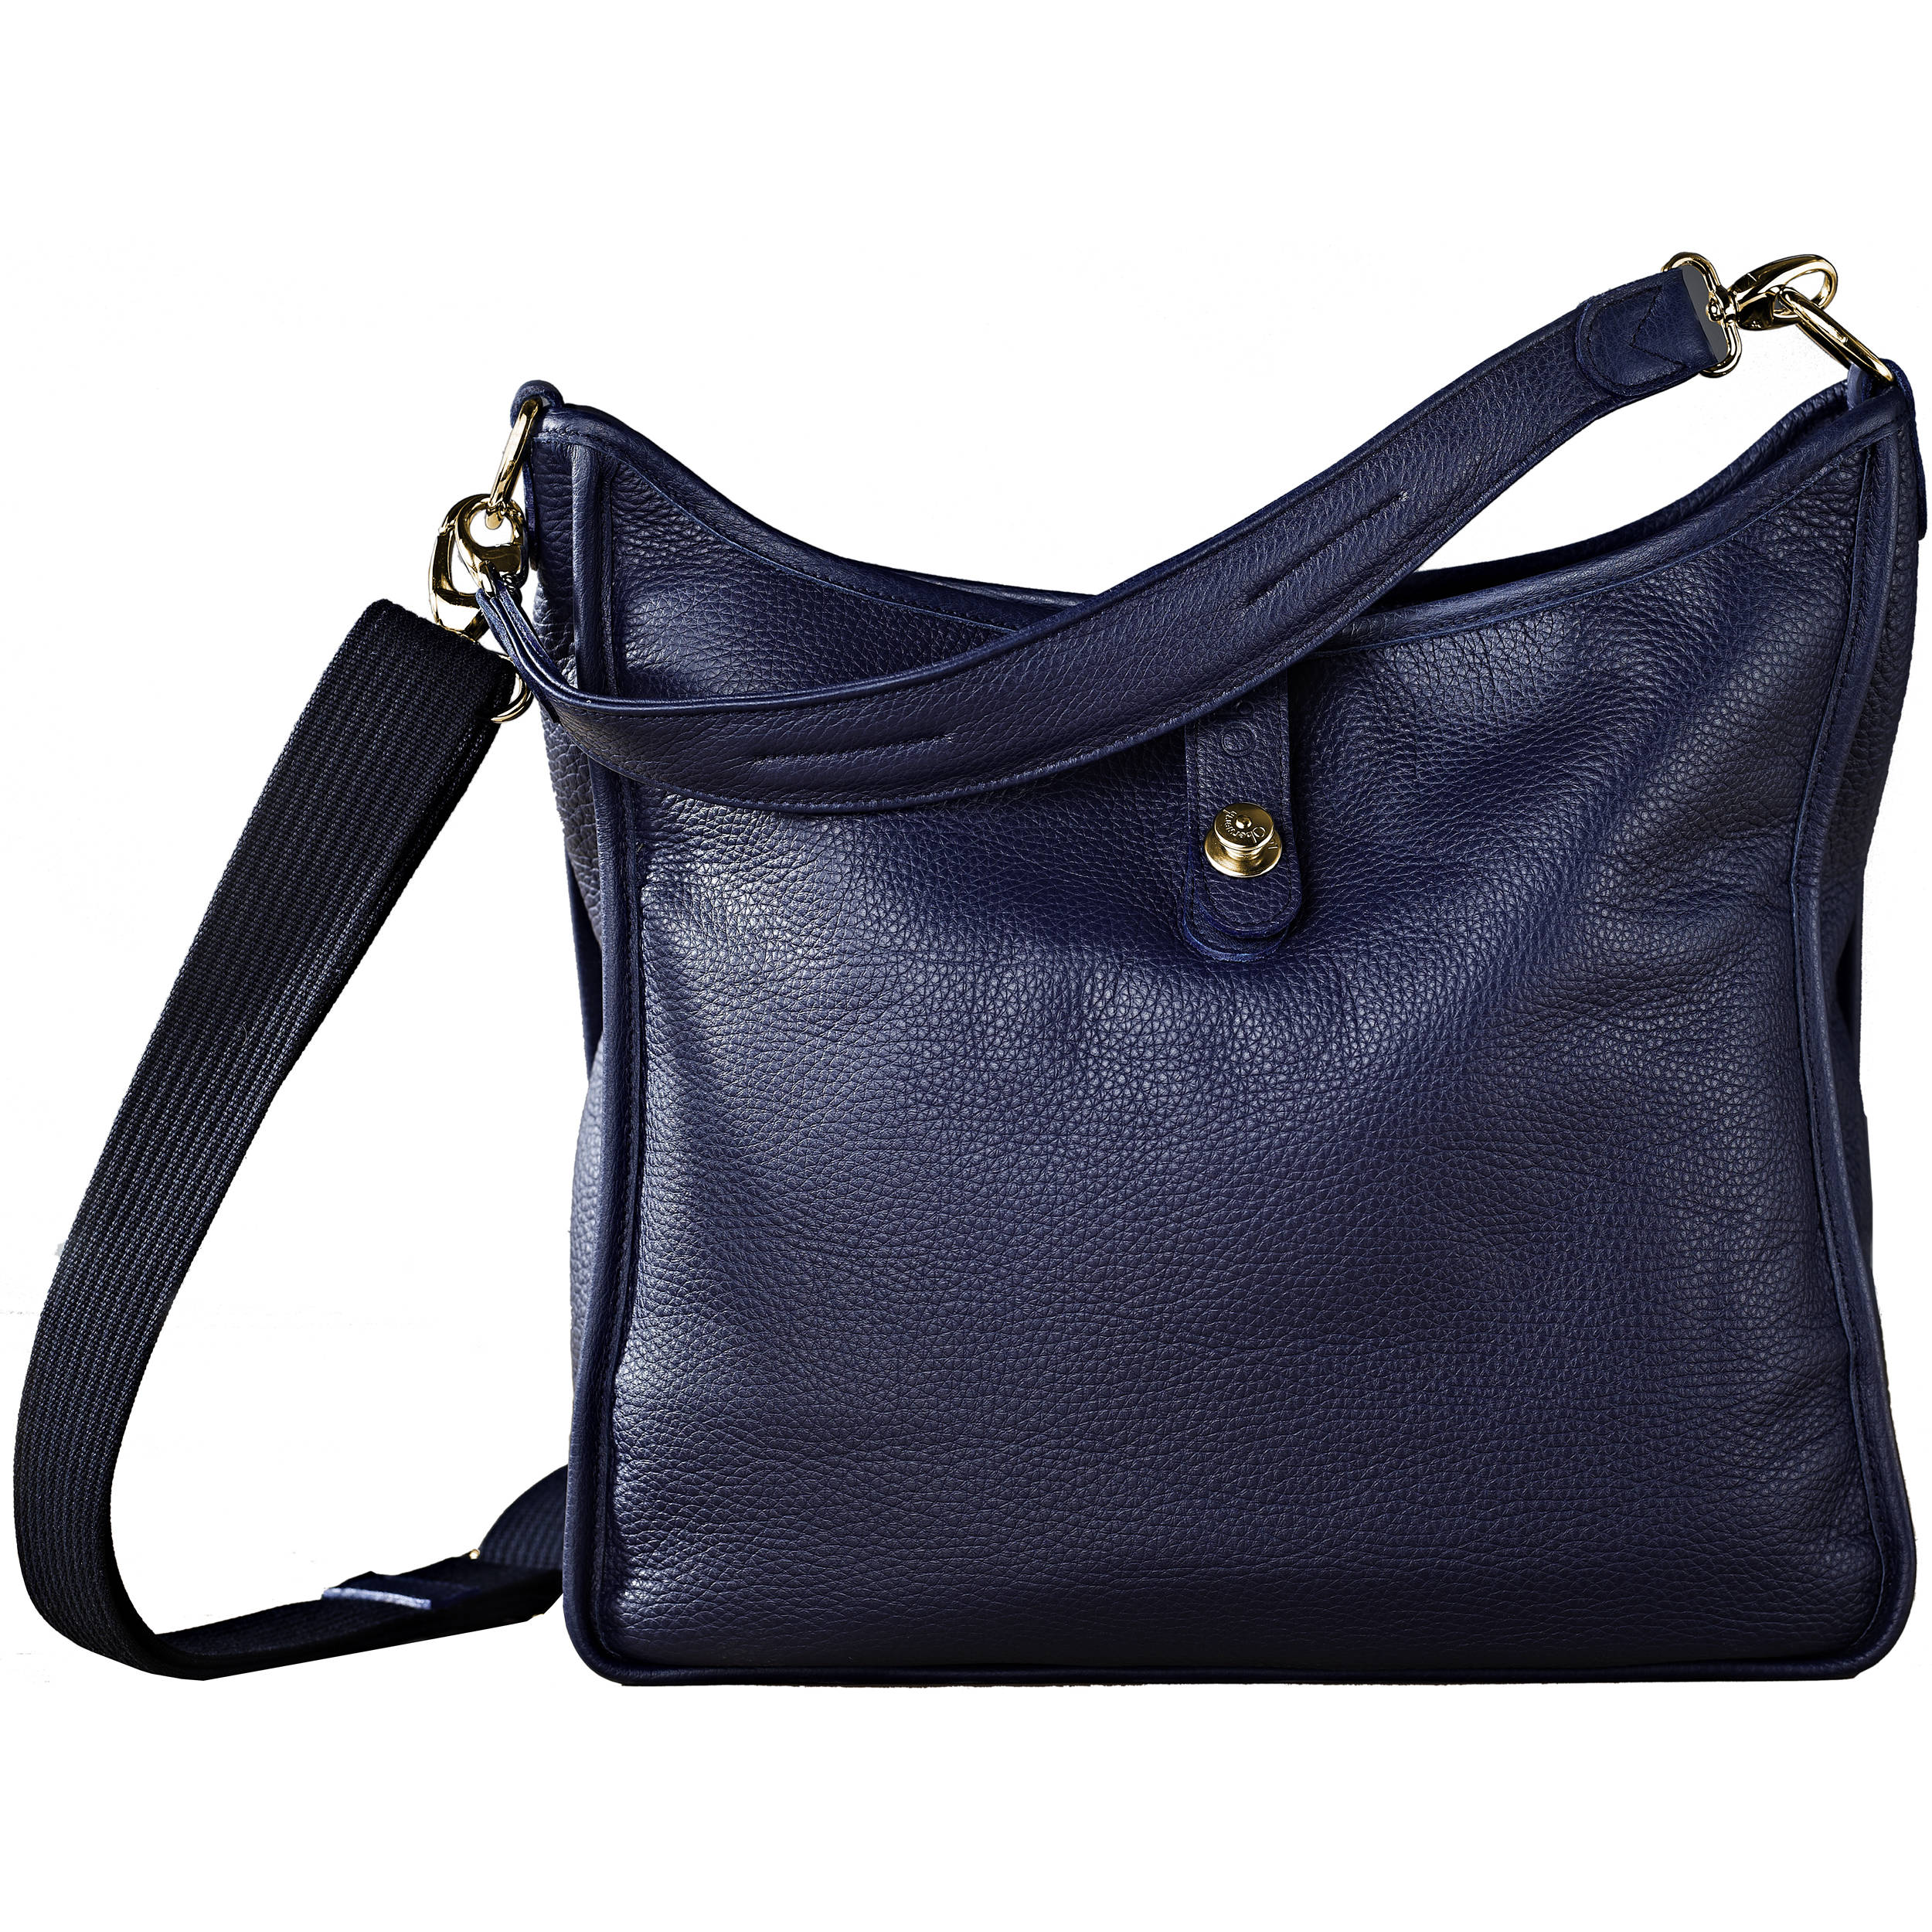 2bc95819bd0 Oberwerth Kate Multi-Functional Gentian Leather Ladies Bag (Navy Blue,  Gold-Plated Fastenings & Buttons)